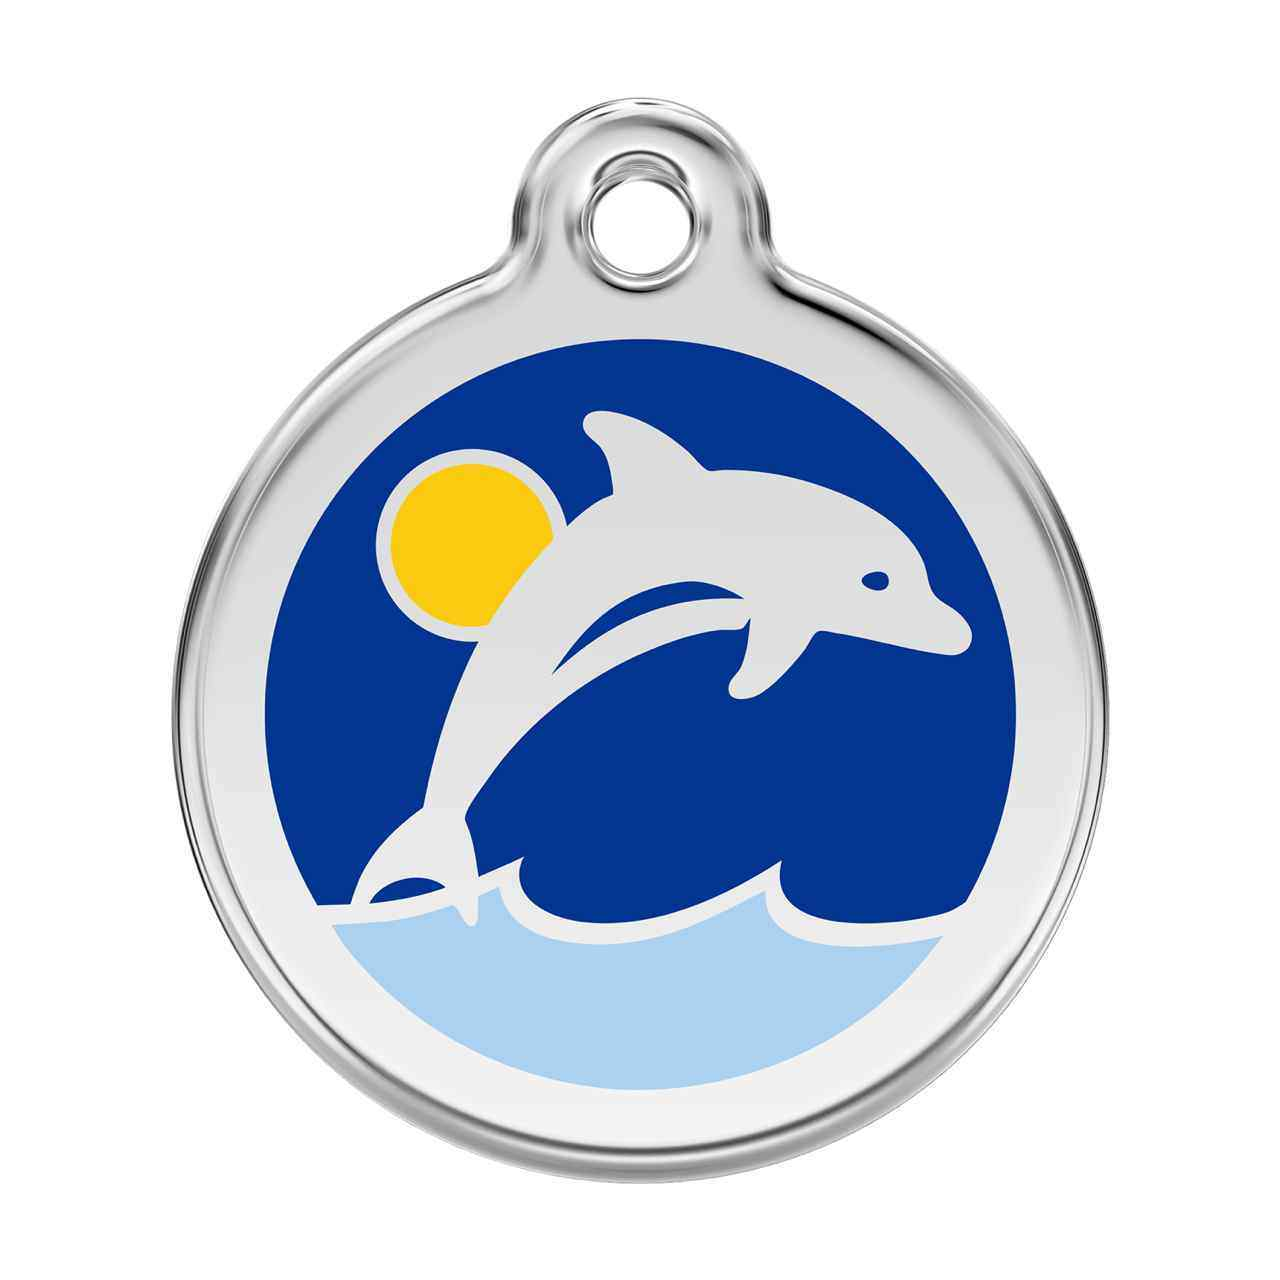 Custom Metal Souvenir Sports Medal with plating